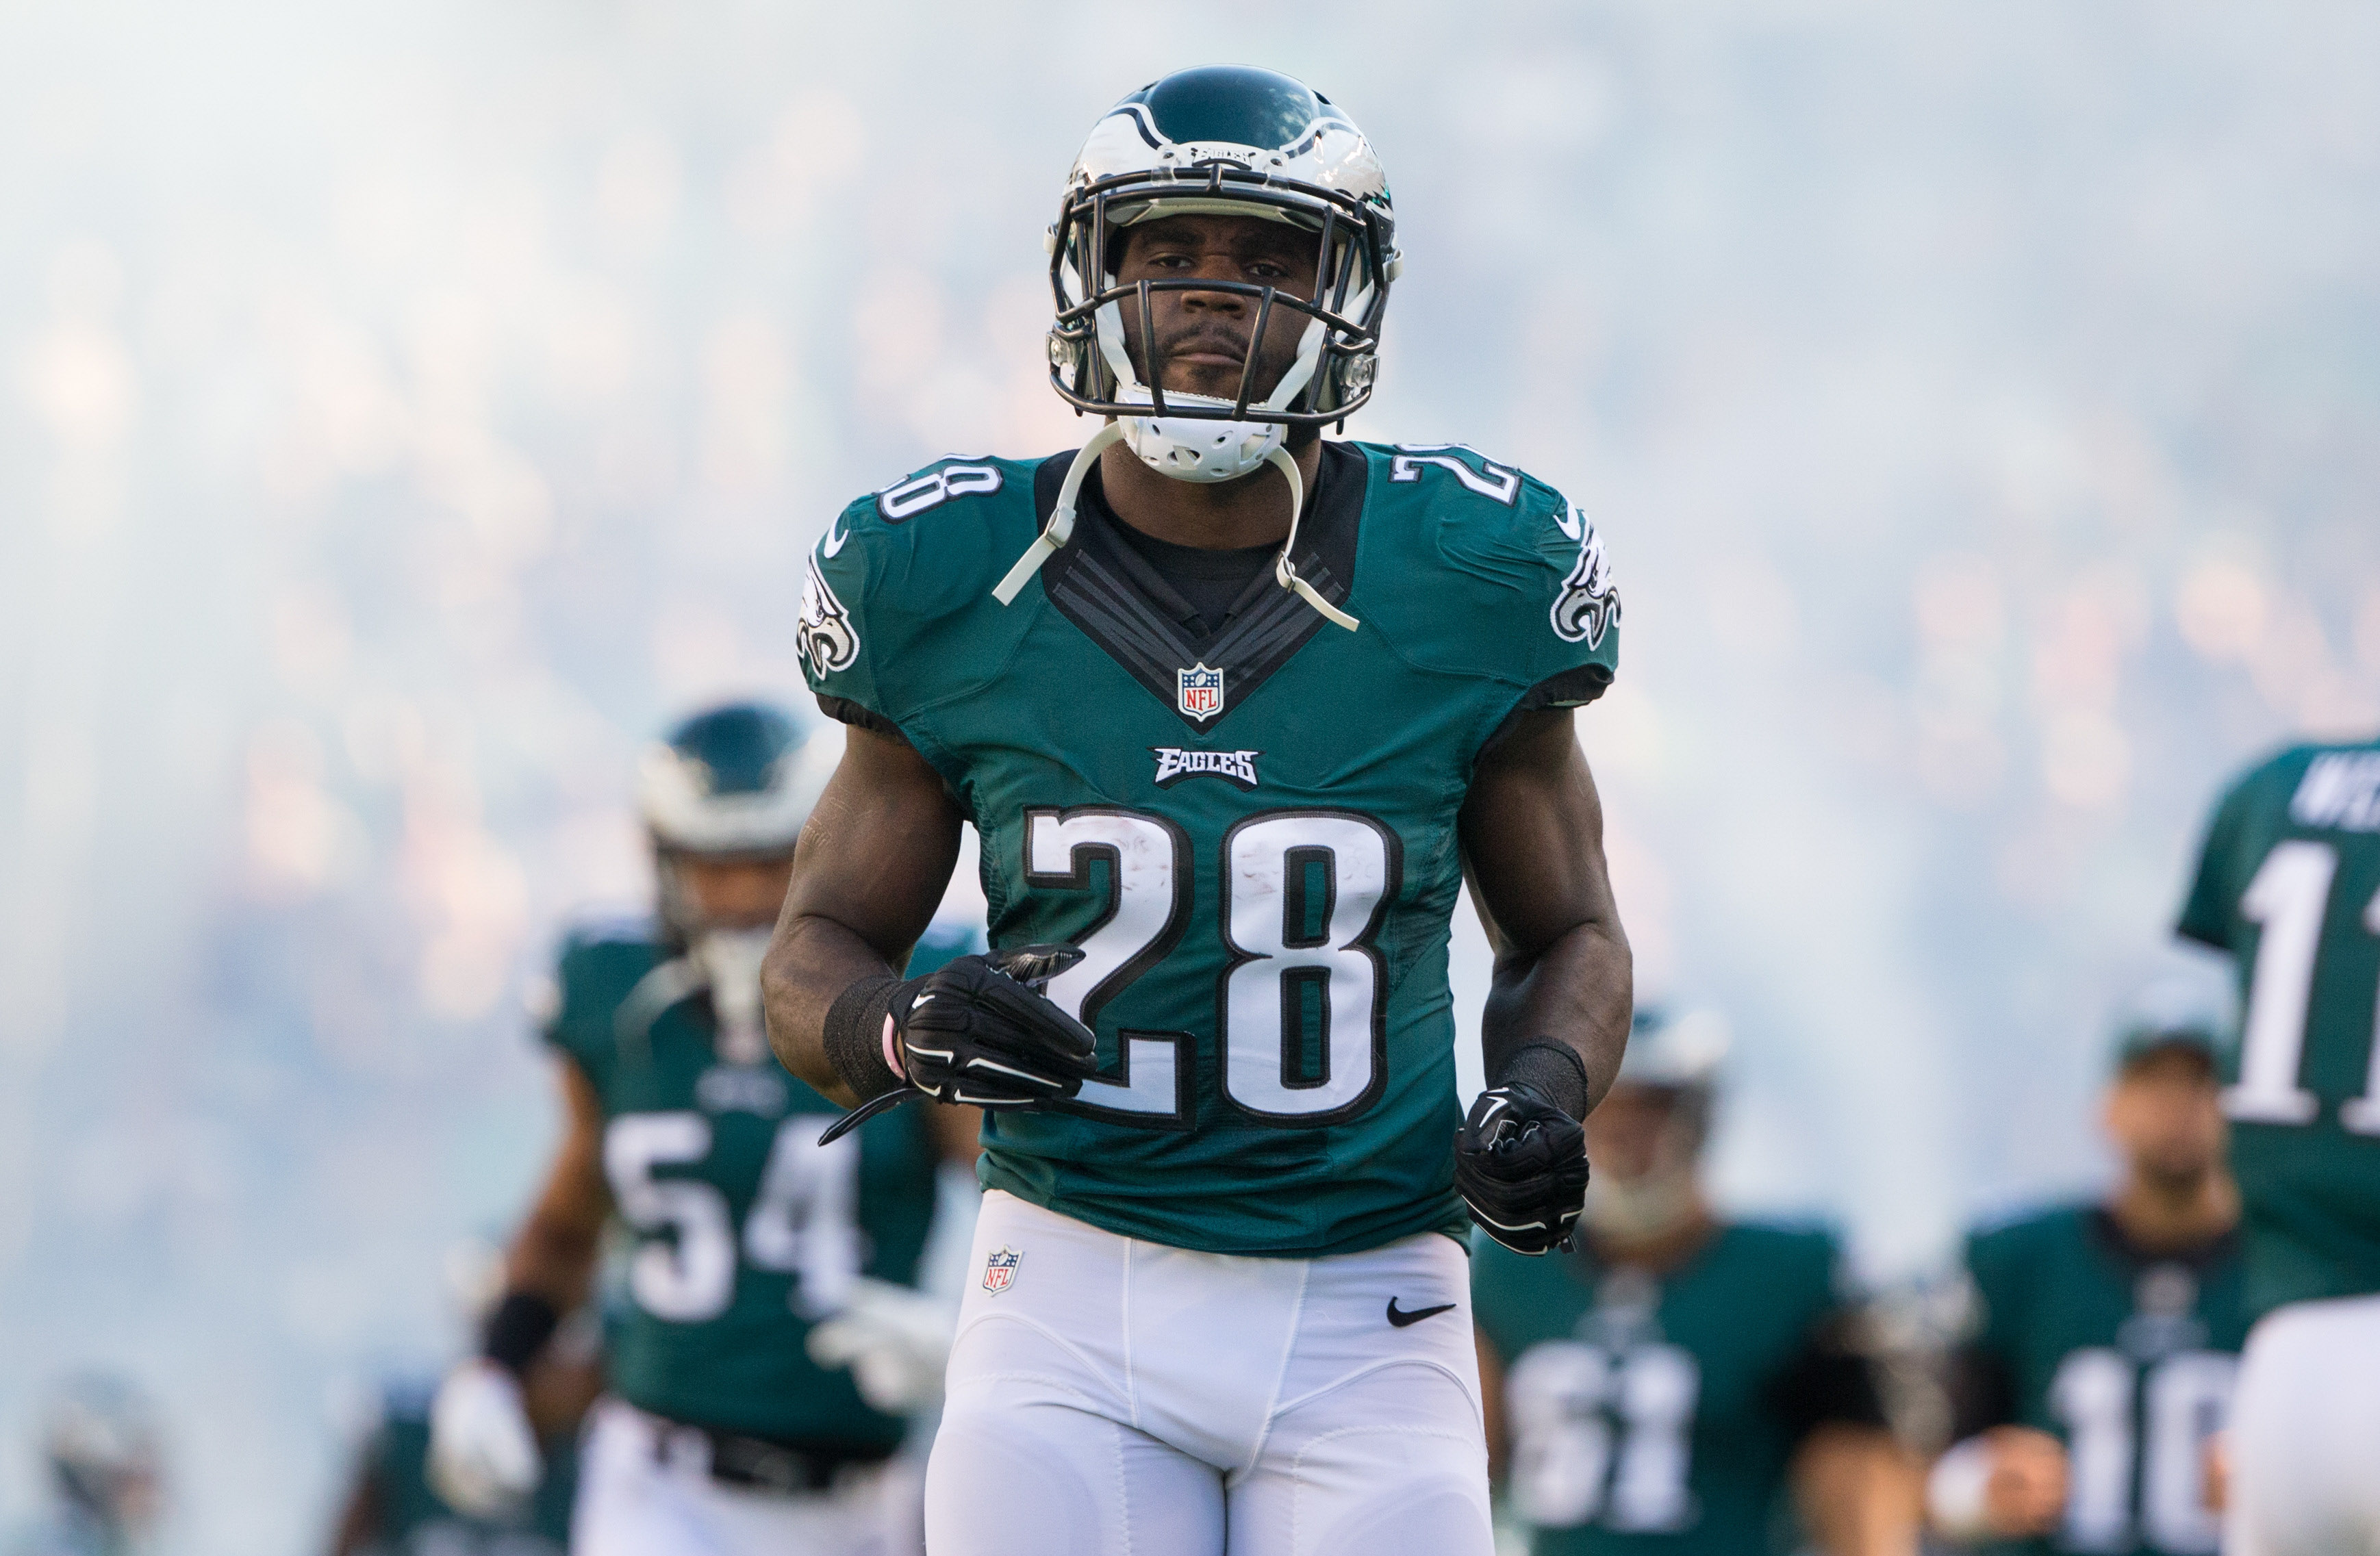 Wendell Smallwood isn't guaranteed a spot on Eagles' roster